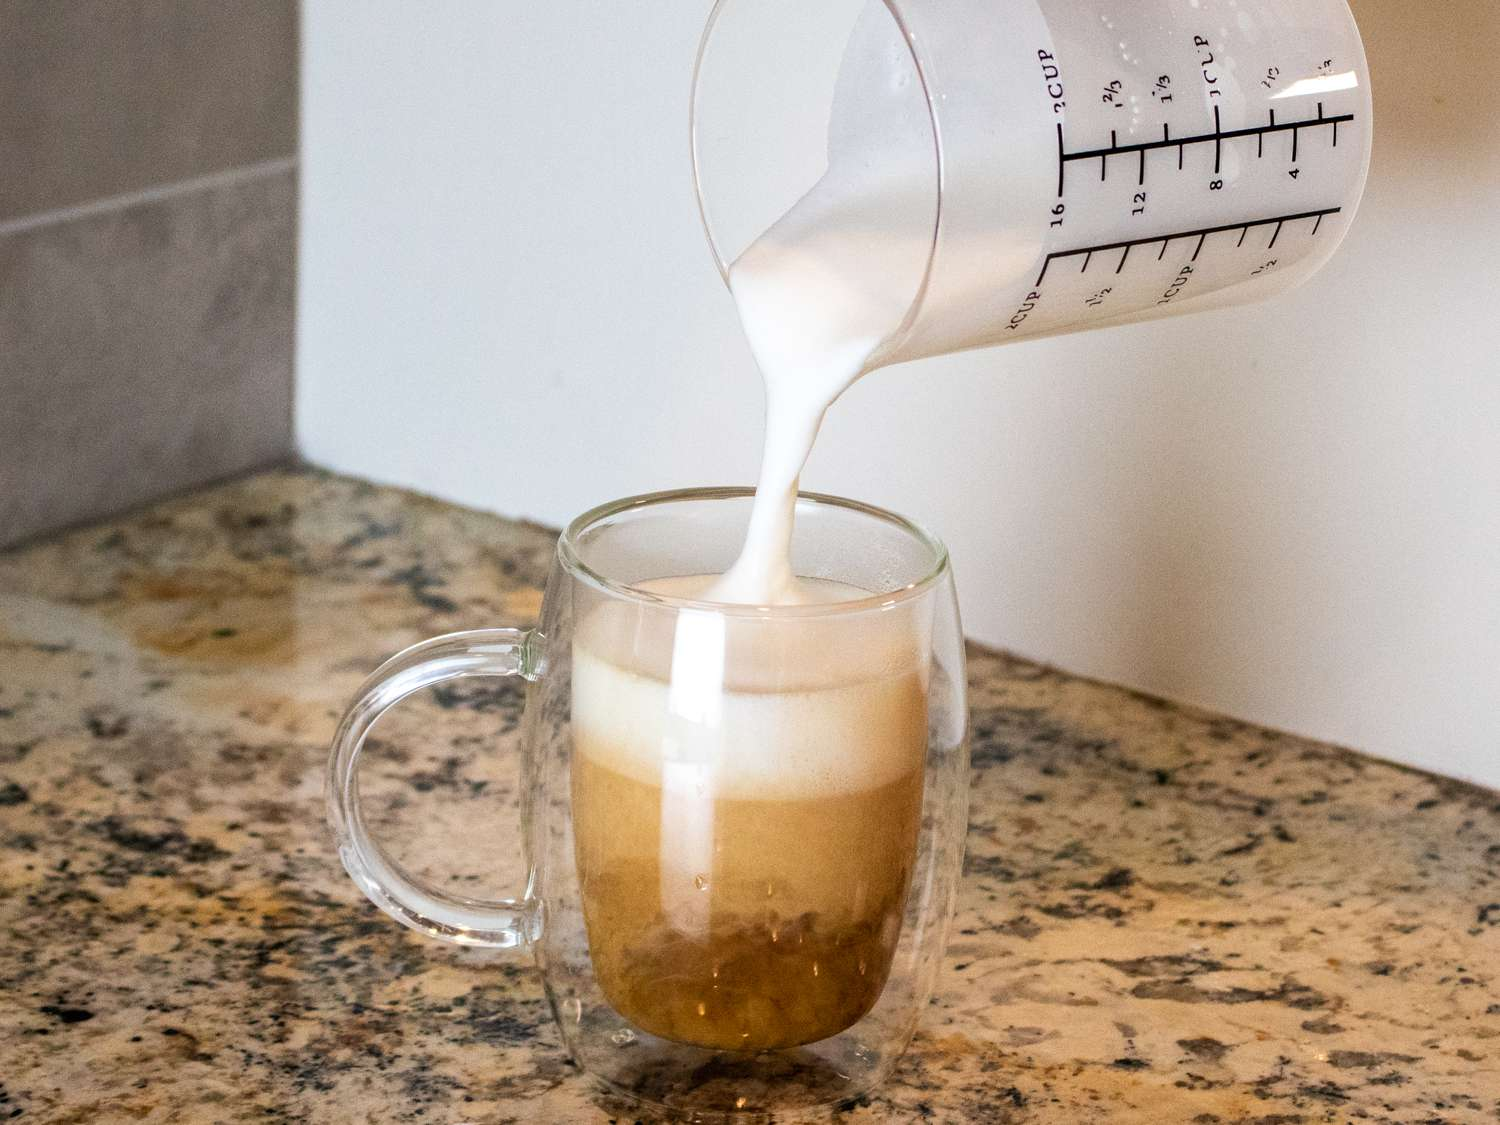 topping a coffee with foamed milk from the Miroco frother